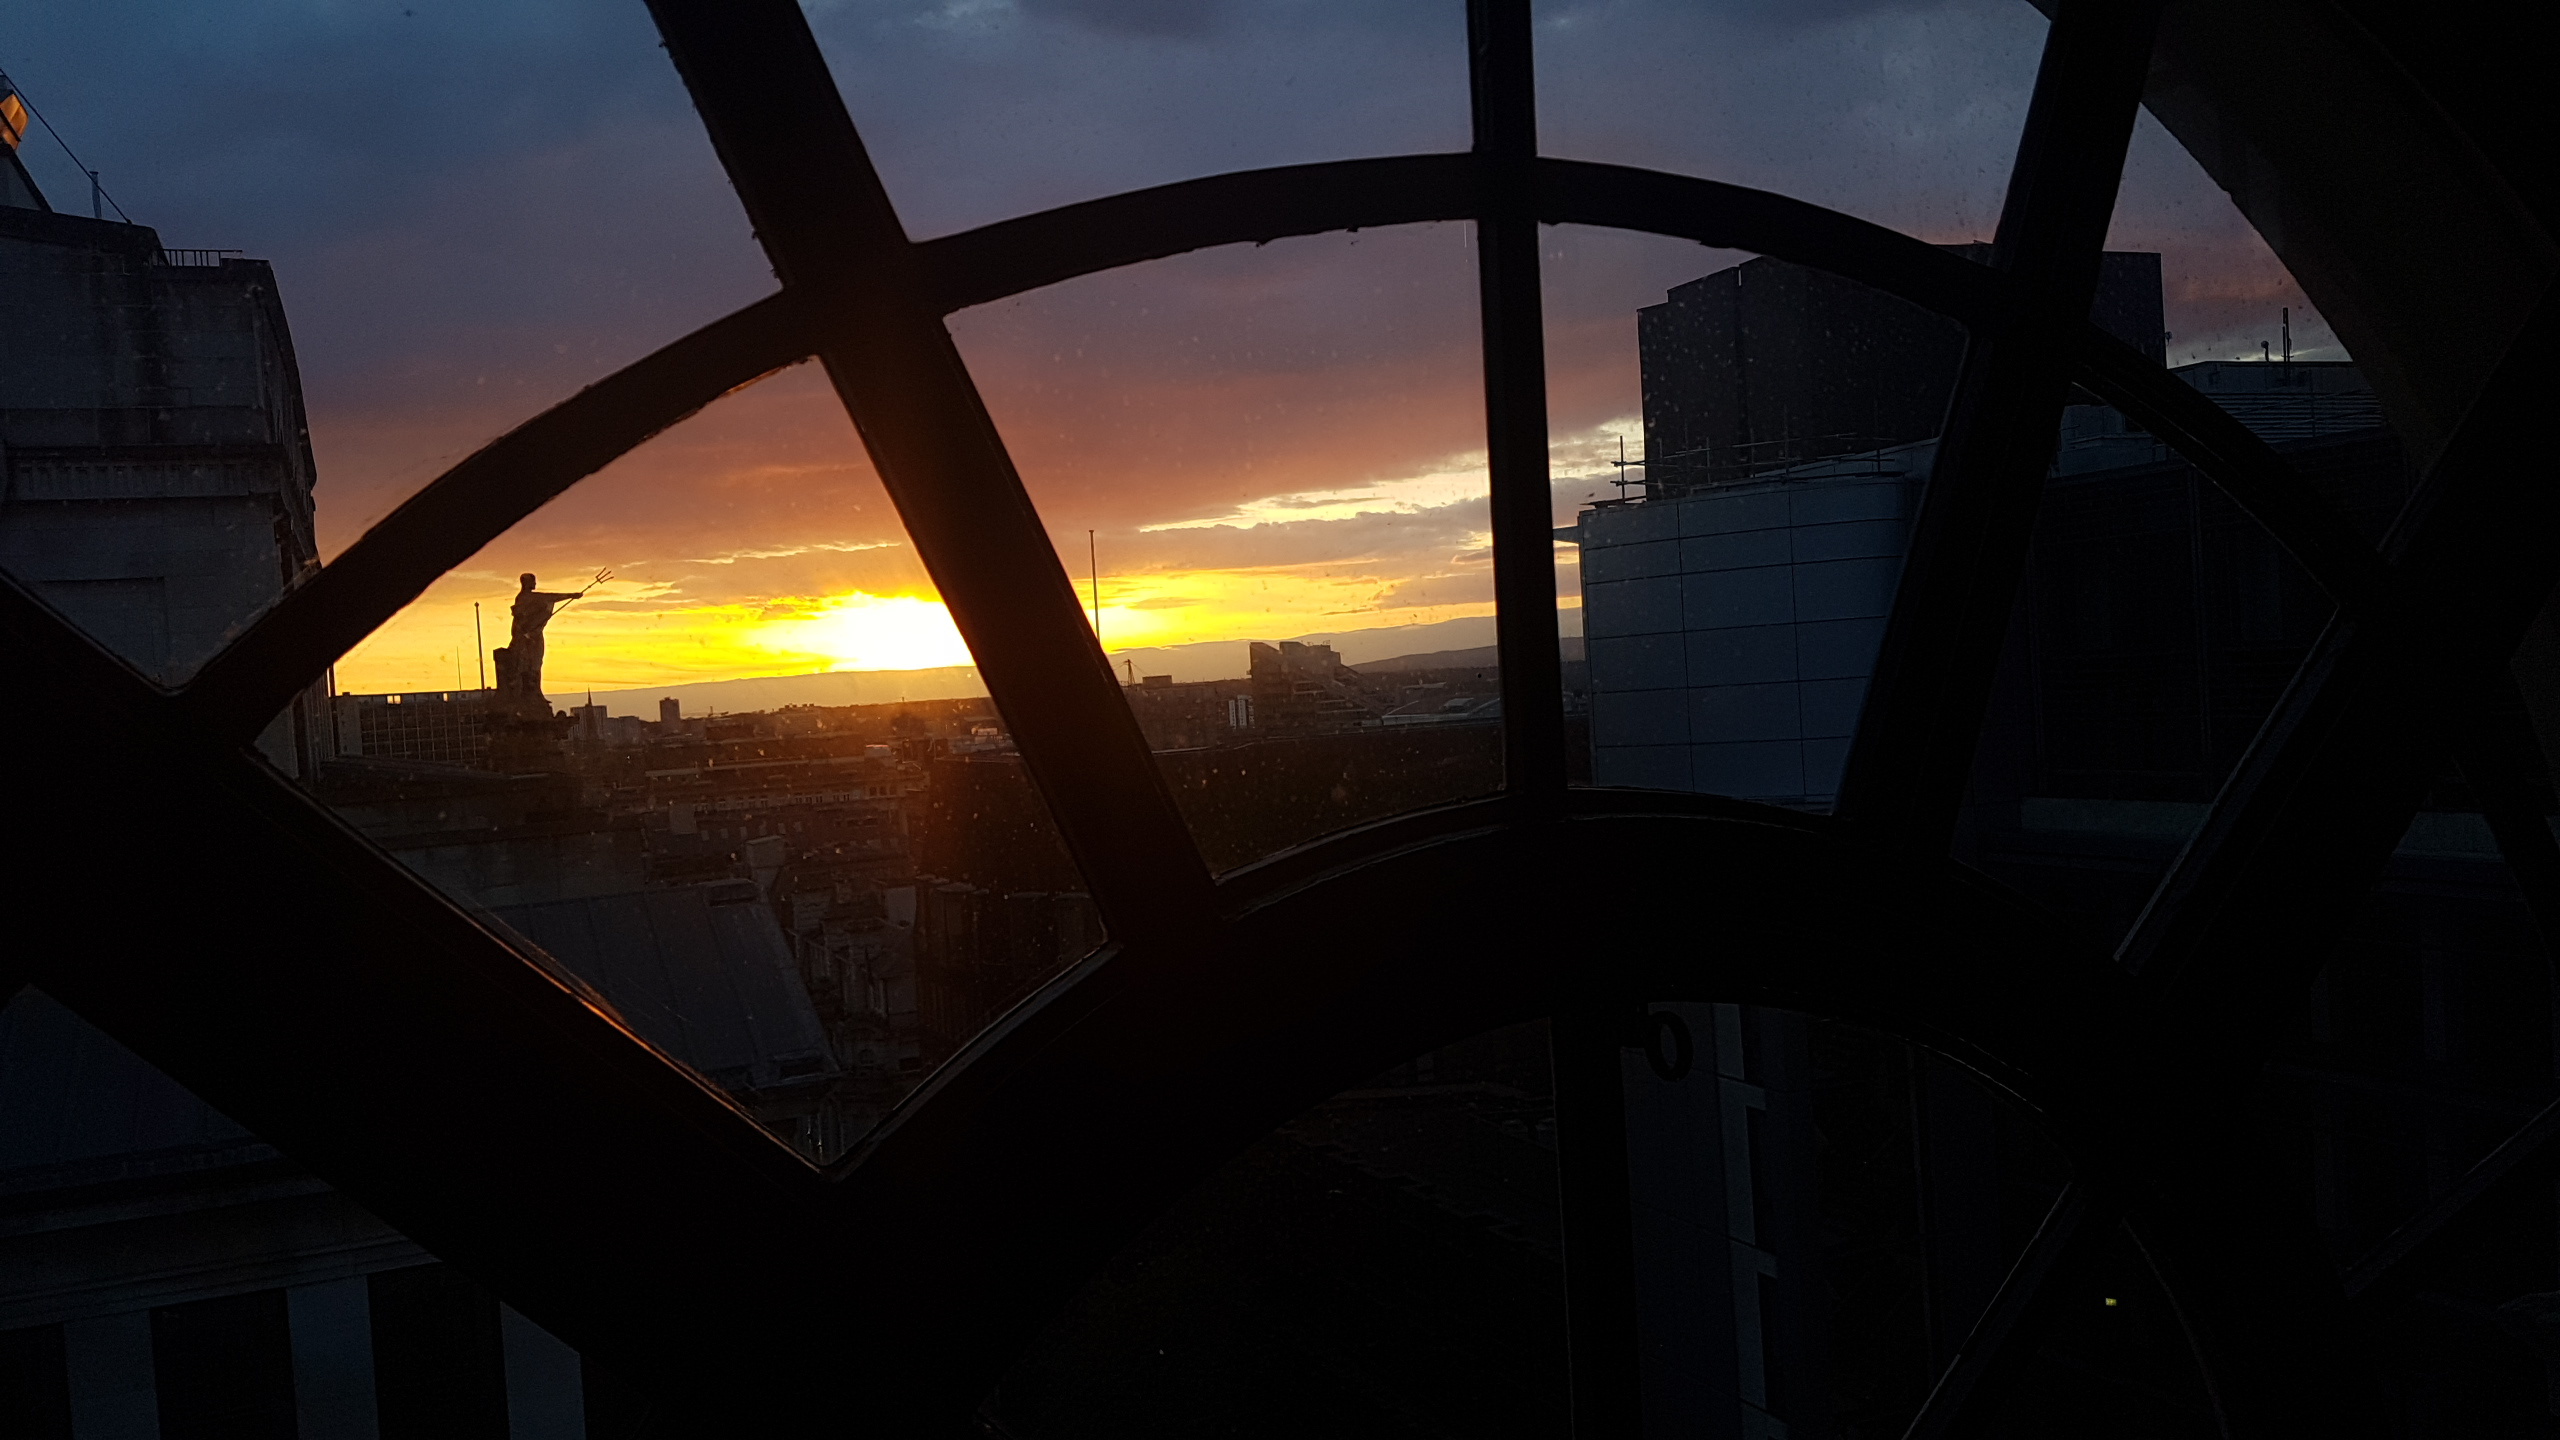 Sunset views of Manchester from Honey restaurant